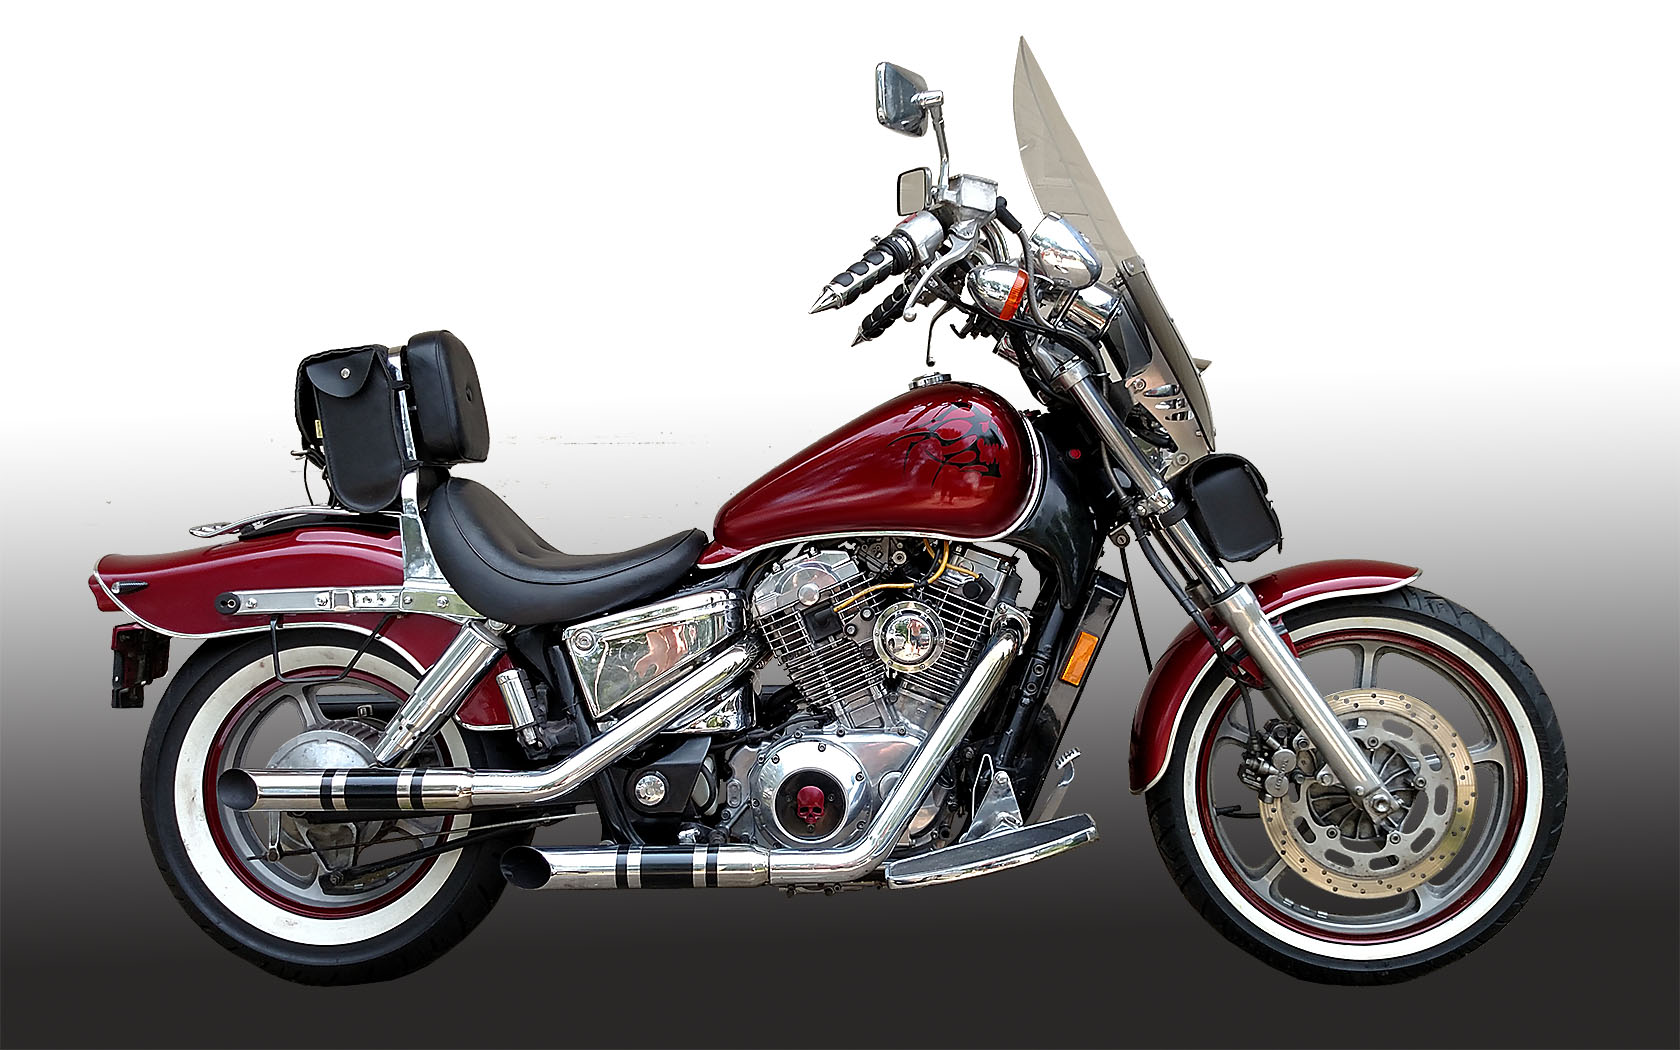 Loss of power at wide open throttle-1984 shadow 500 - Honda Shadow